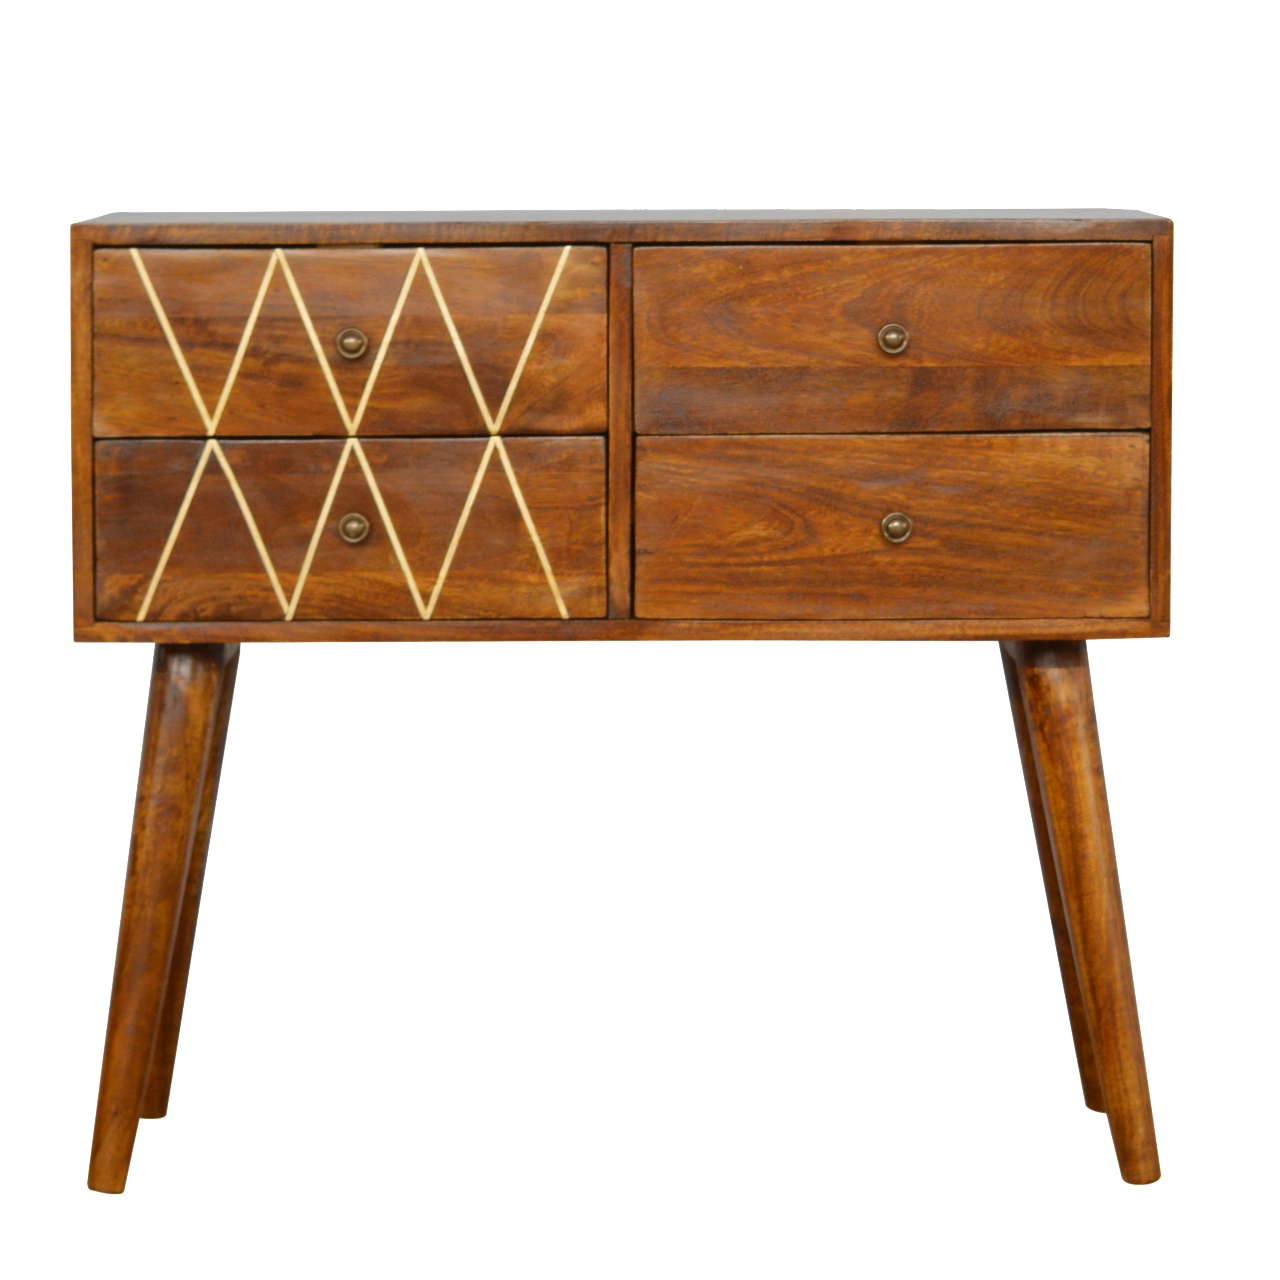 4 Drawer Nordic Style Console Table With Brass Inlay – Oh Me Oh My For Orange Inlay Console Tables (View 3 of 20)